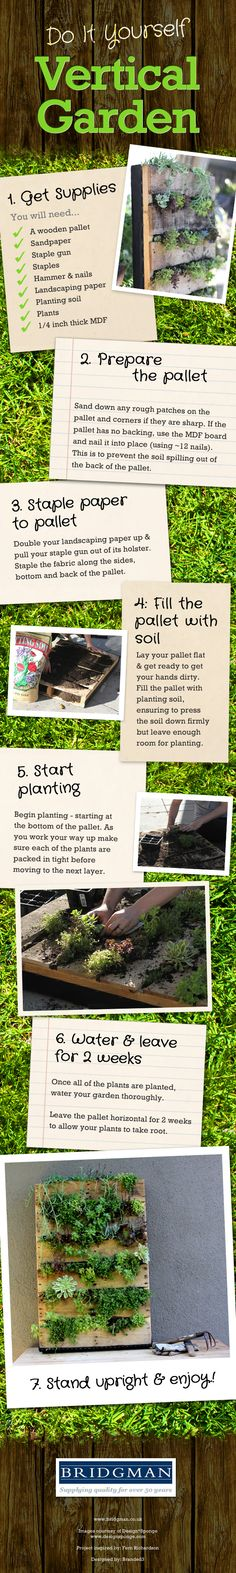 How To Make A Vertical Garden: Instructographic